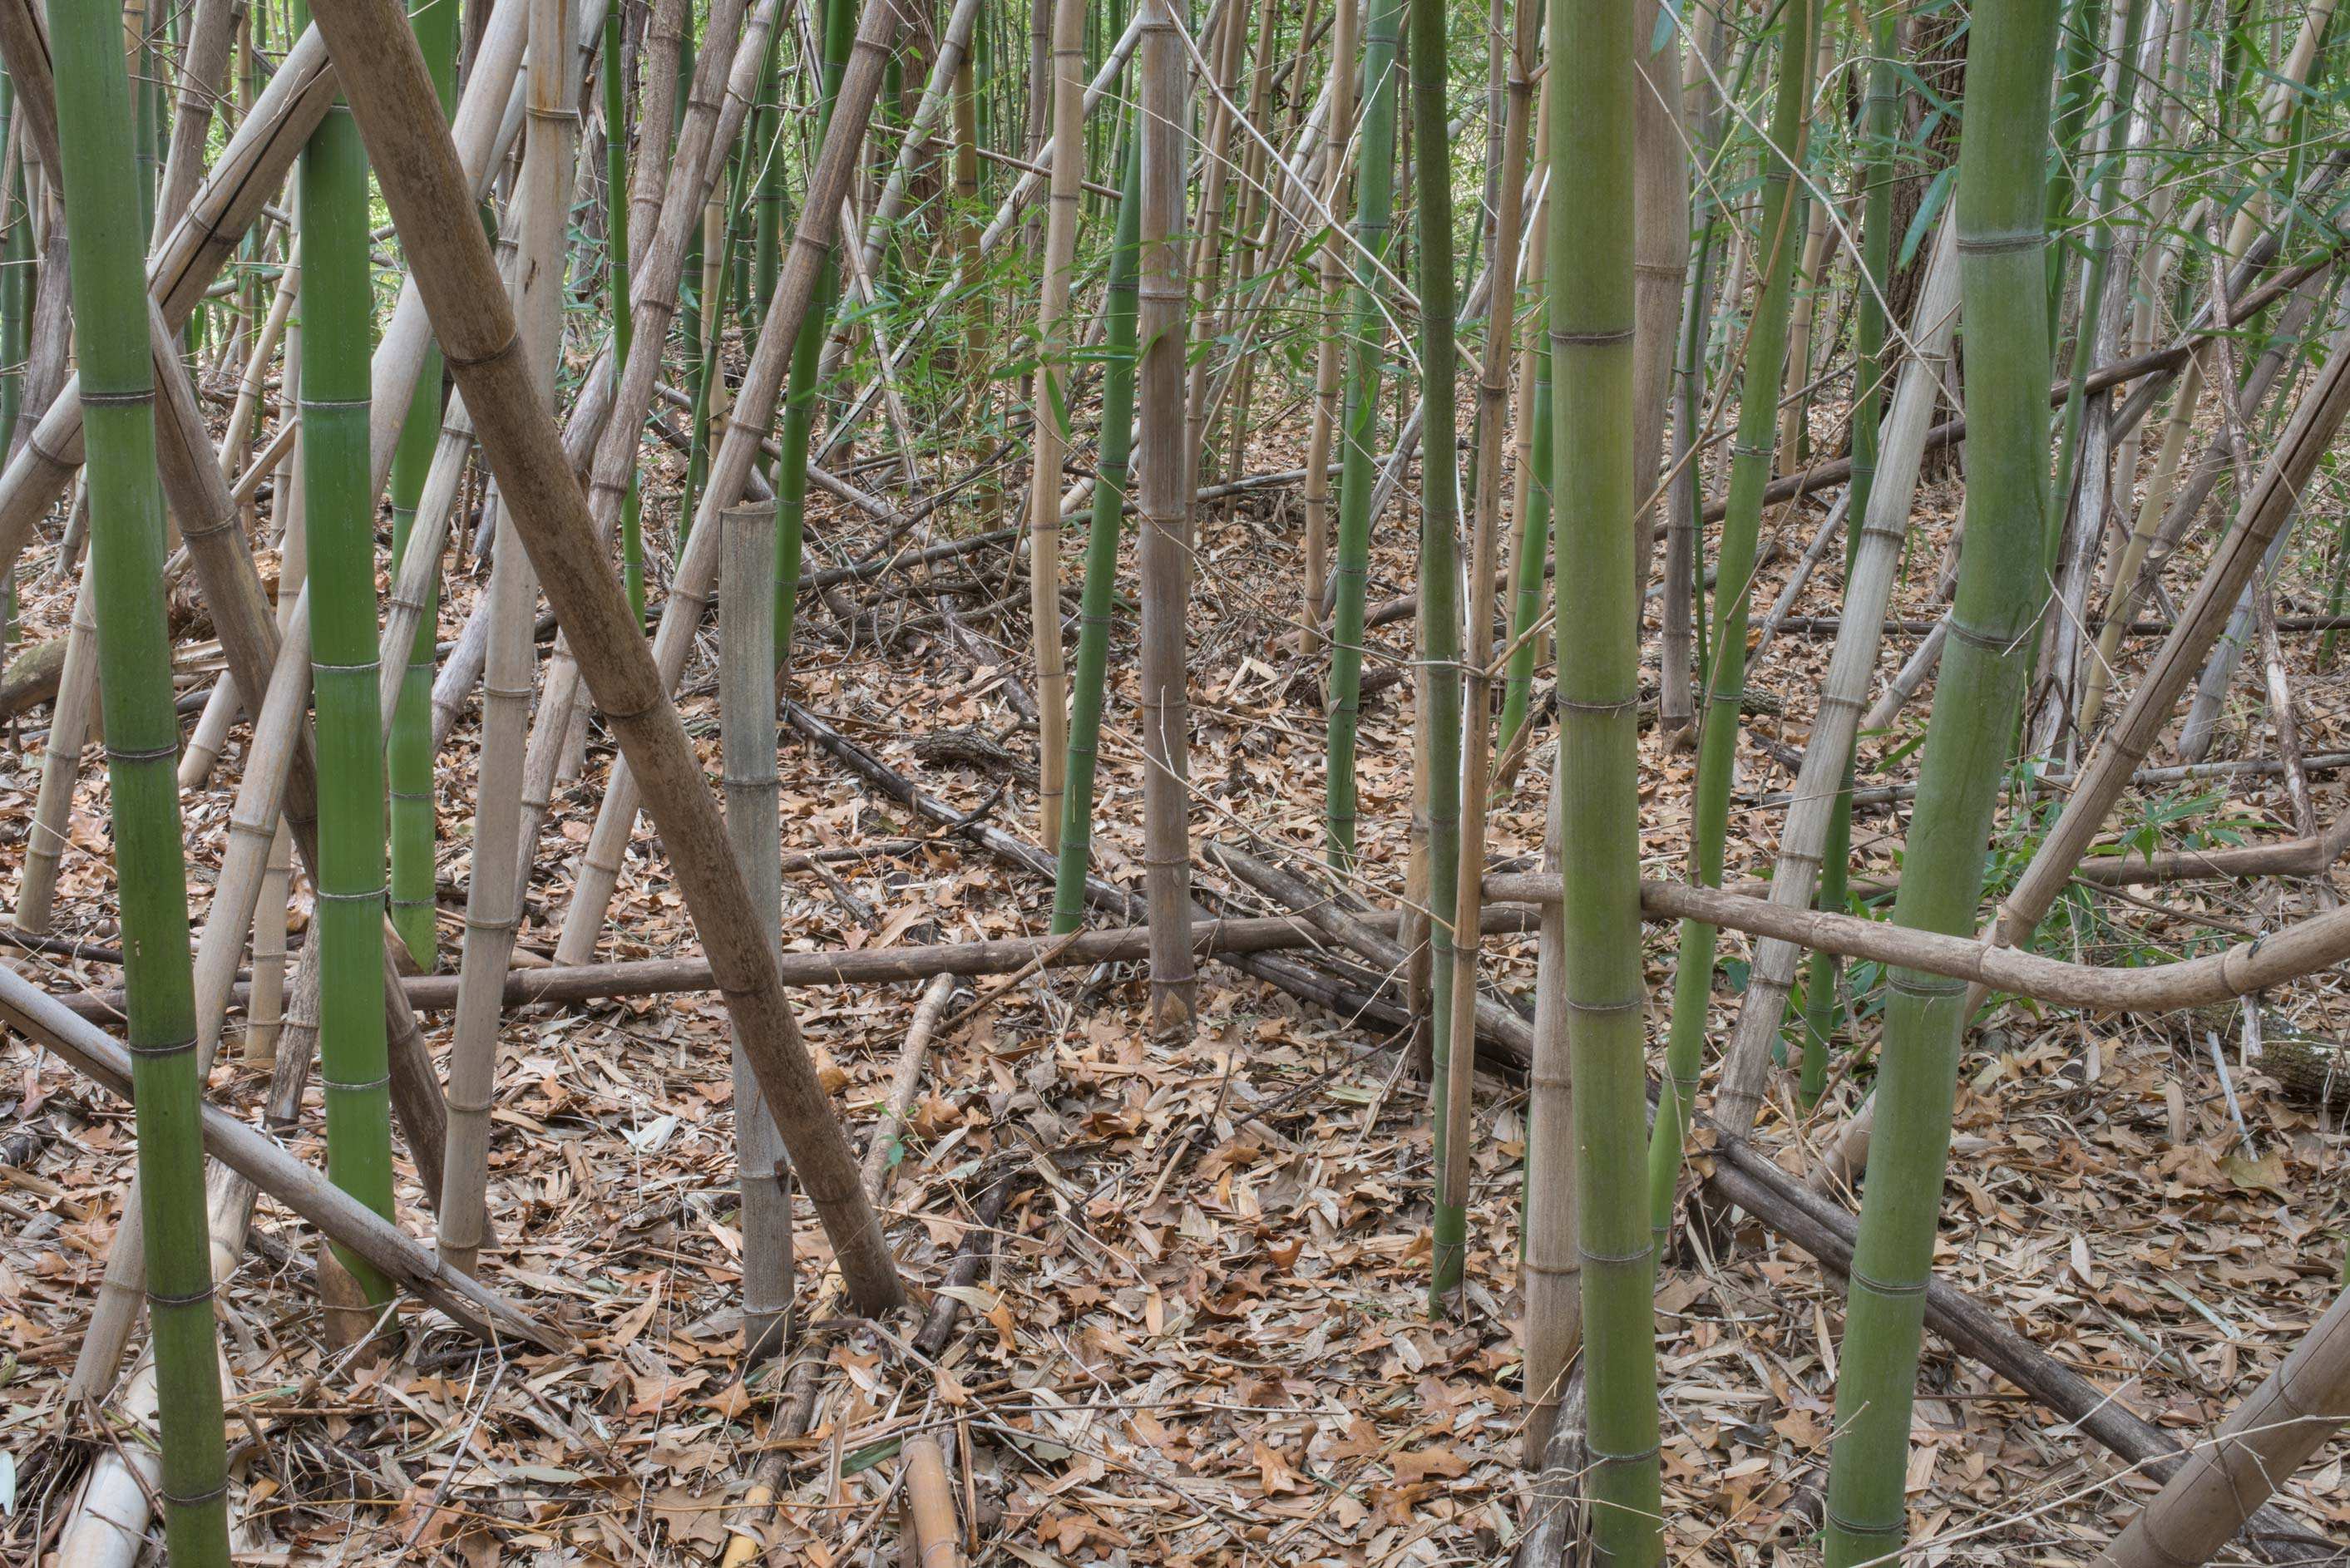 Bamboo forest along a creek on Kiwanis Nature Trail. College Station, Texas